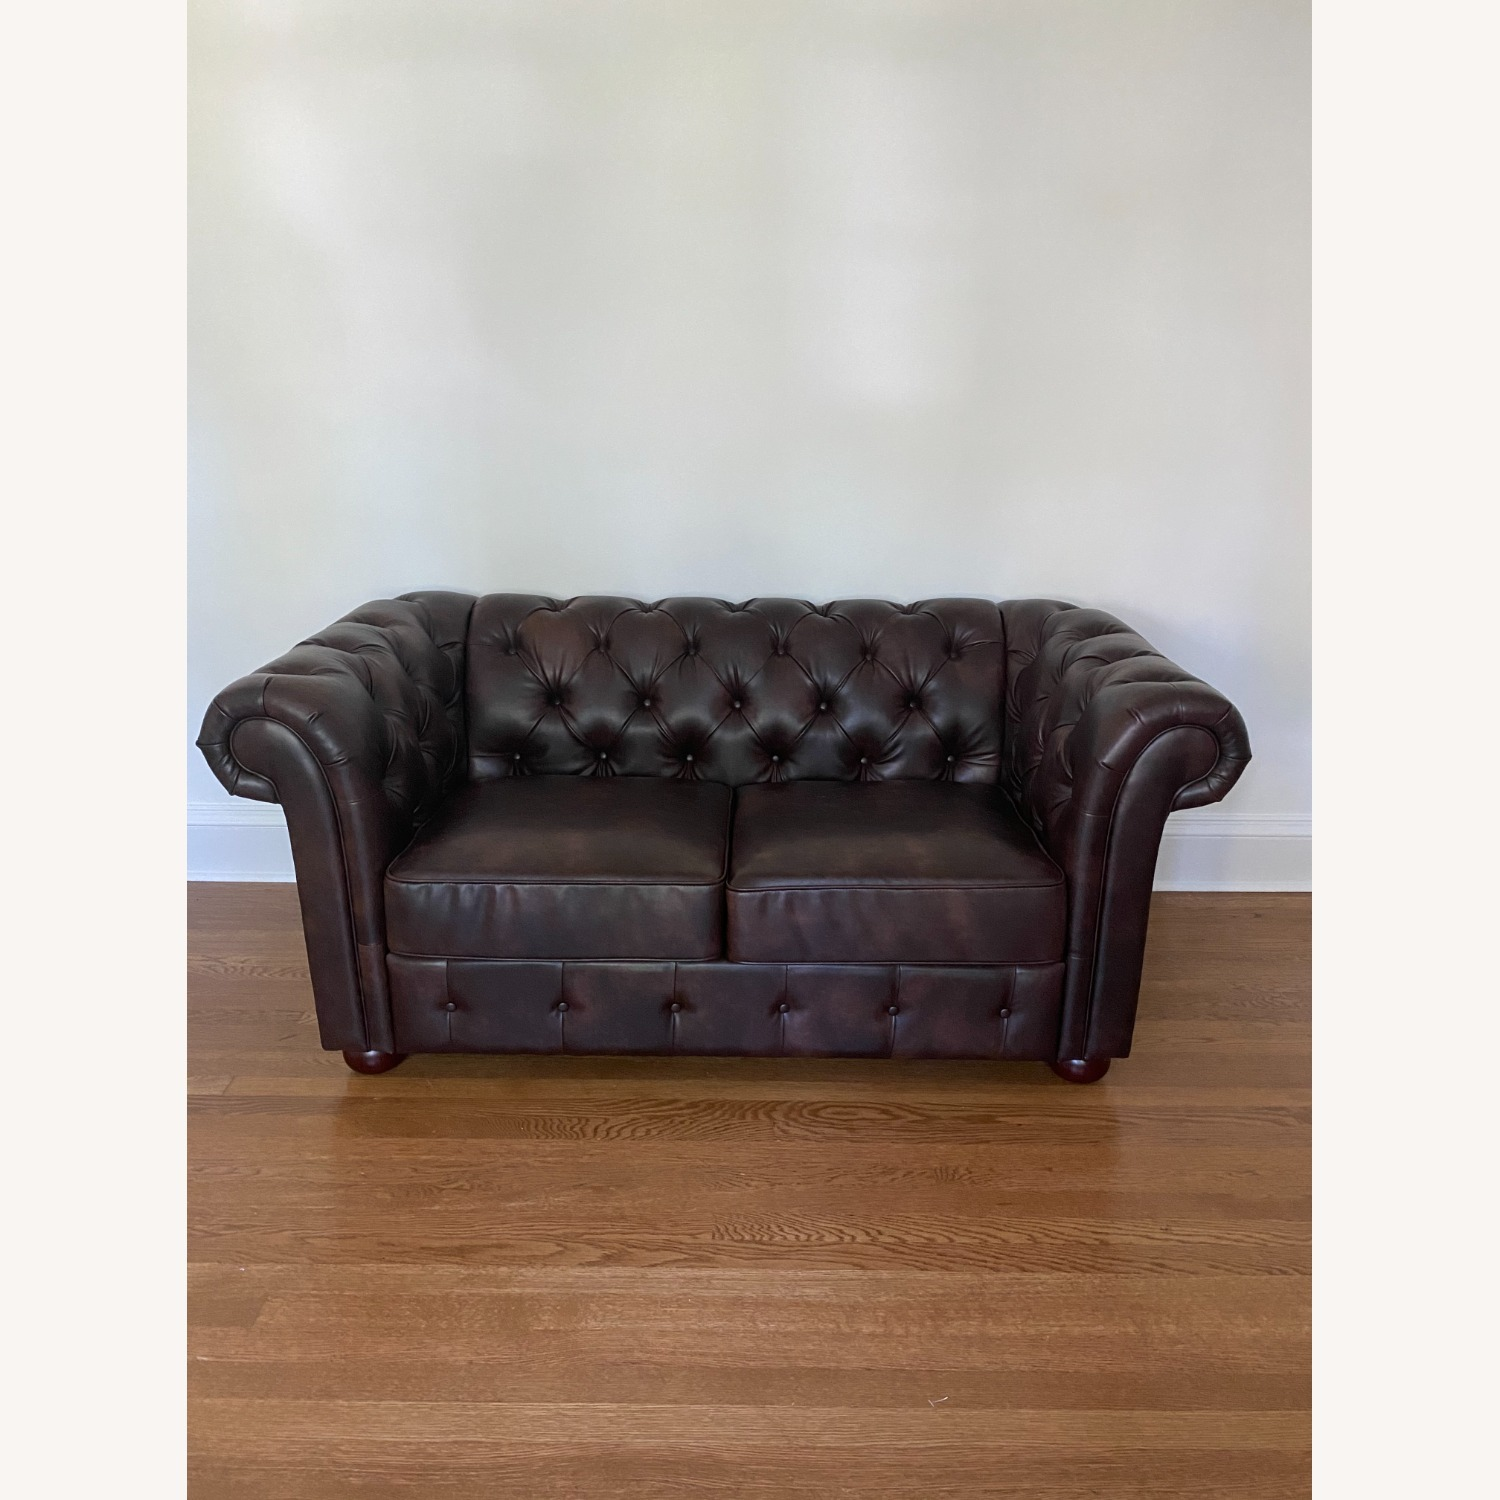 Wayfair Faux Leather Rolled Arm Loveseat - image-1